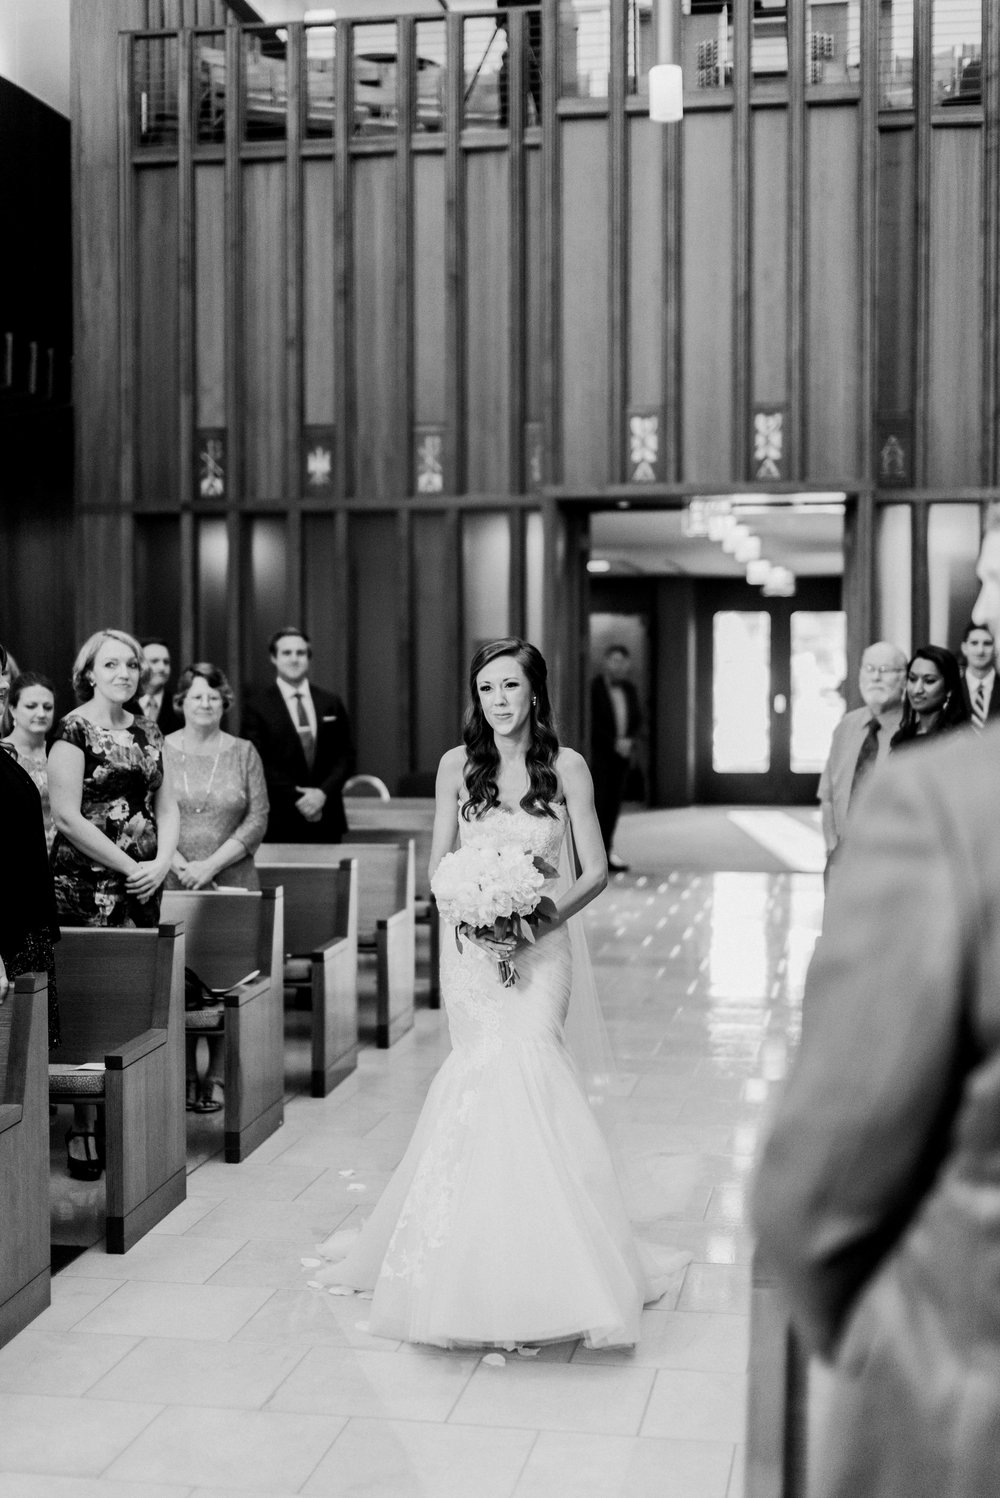 St.-Philip-Presbyterian-Church-Houston-Wedding-Ceremony-The-Junior-League-Of-Houston-Reception-Dana-Fernandez-Photography-Fine-Art-Film-24.jpg